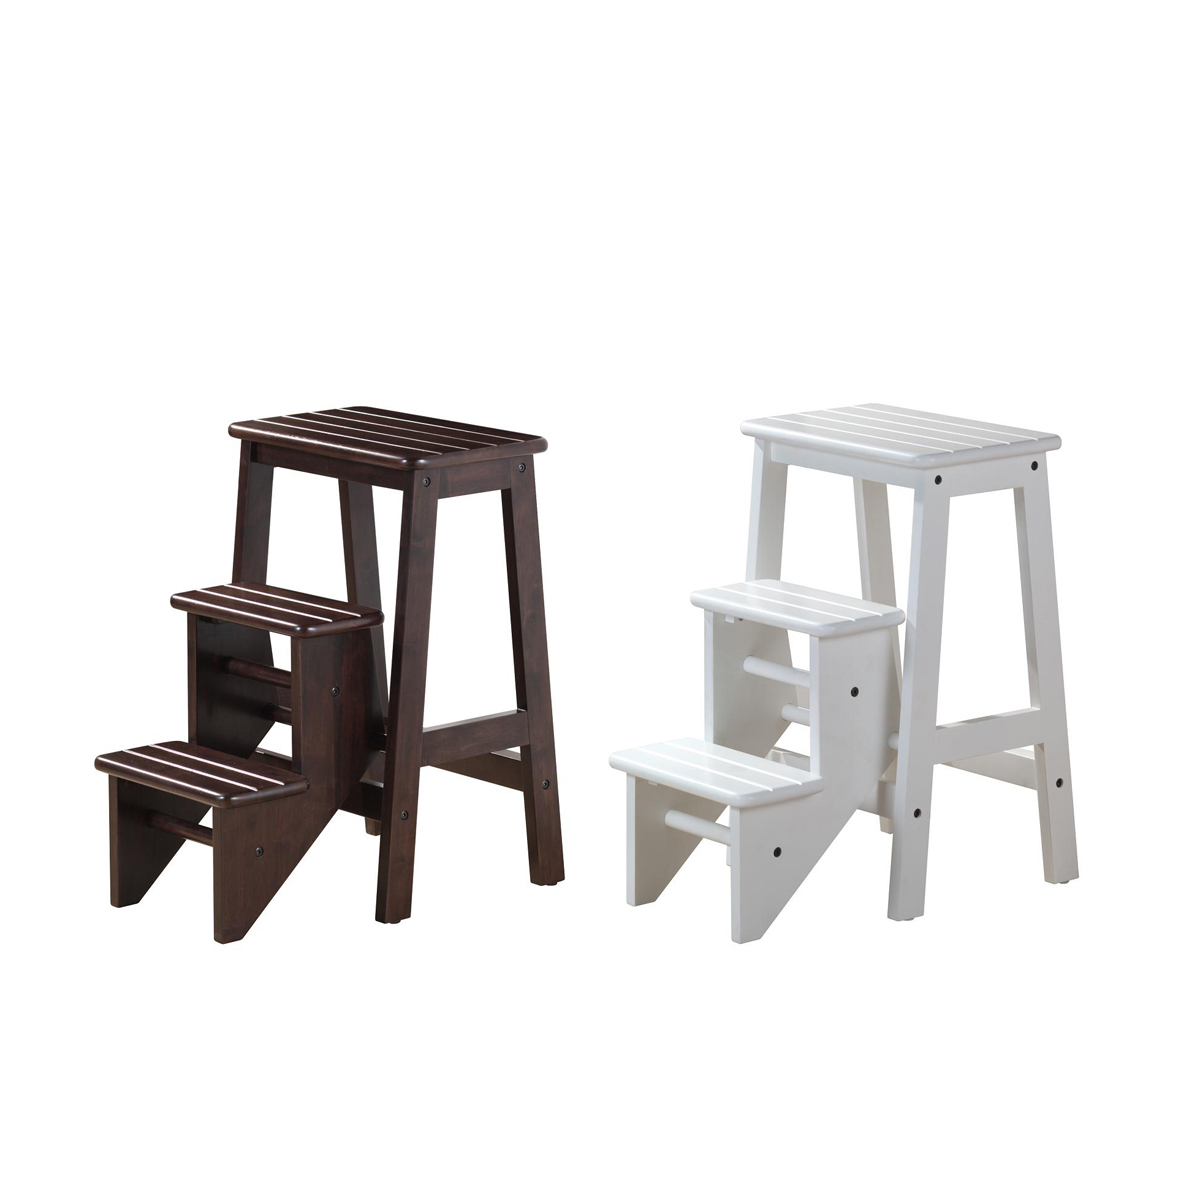 Cosco 3 Step Steel Commercial Folding Step Stool With 300